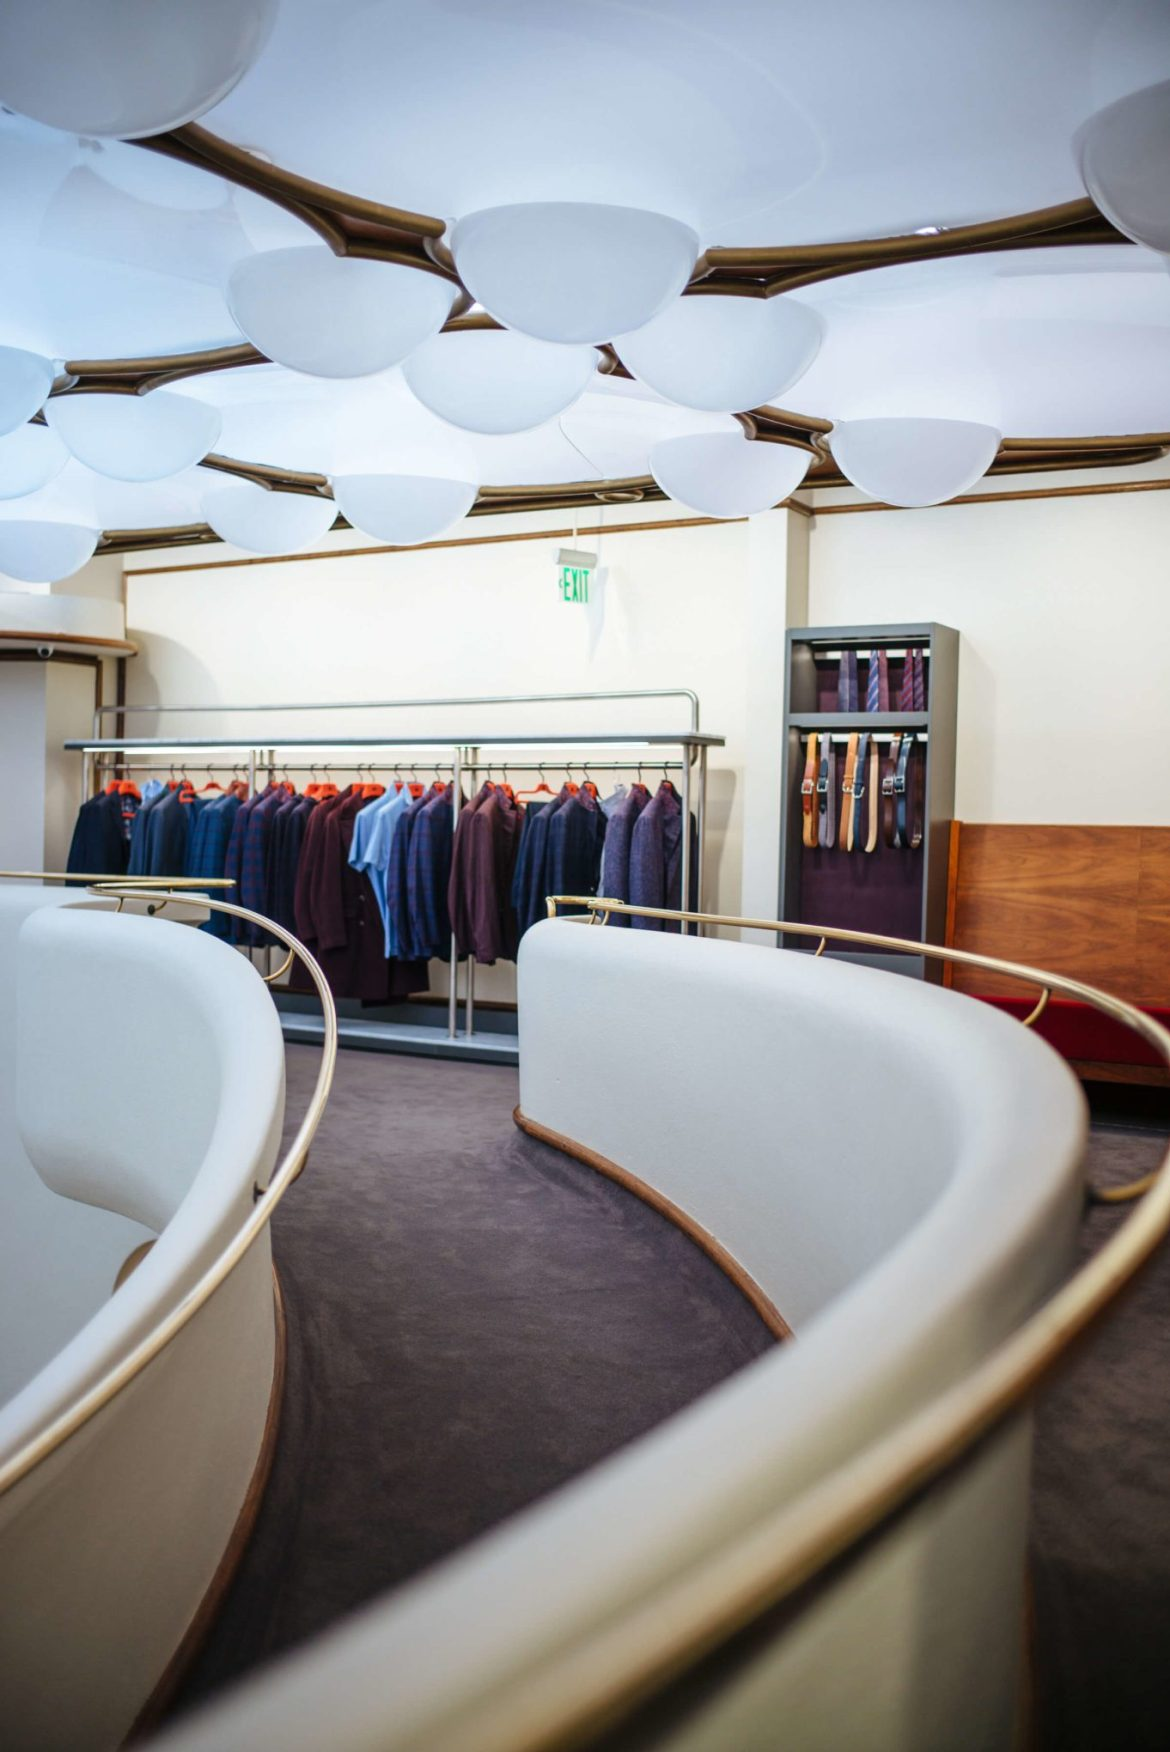 Spiral staircase at Isaia San Francisco Store, Neapolitan Isaia suits in the historic VC Morris Frank Lloyd Wright San Francisco, The Taste Edit